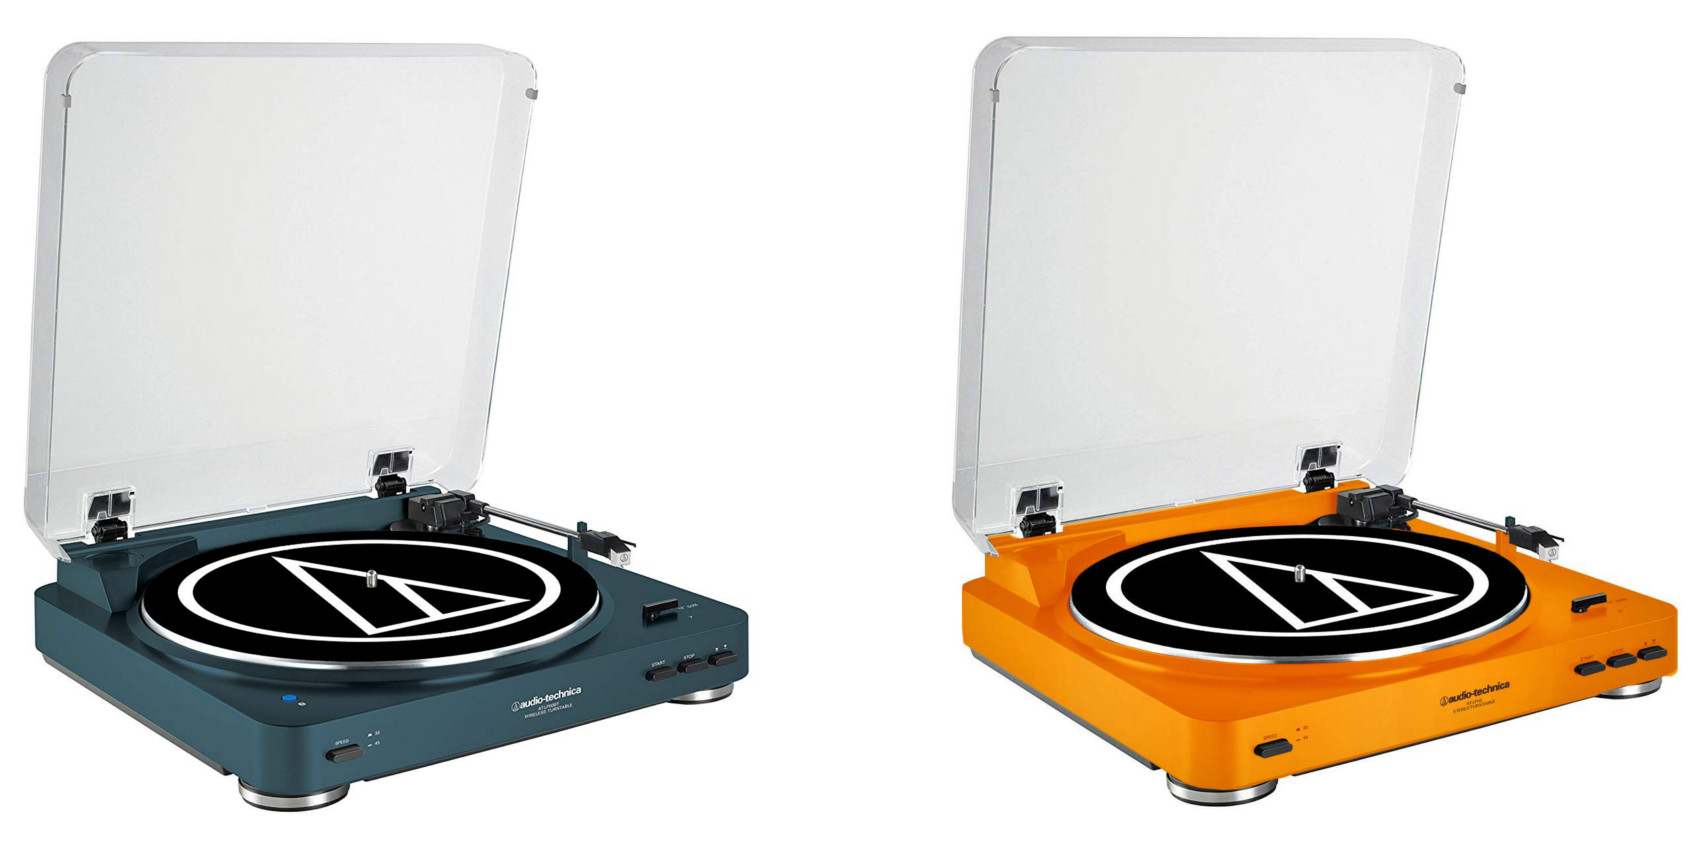 The Audio-Technica AT-LP60 Series Turntables are on sale starting from $79 (Reg. up to $150)